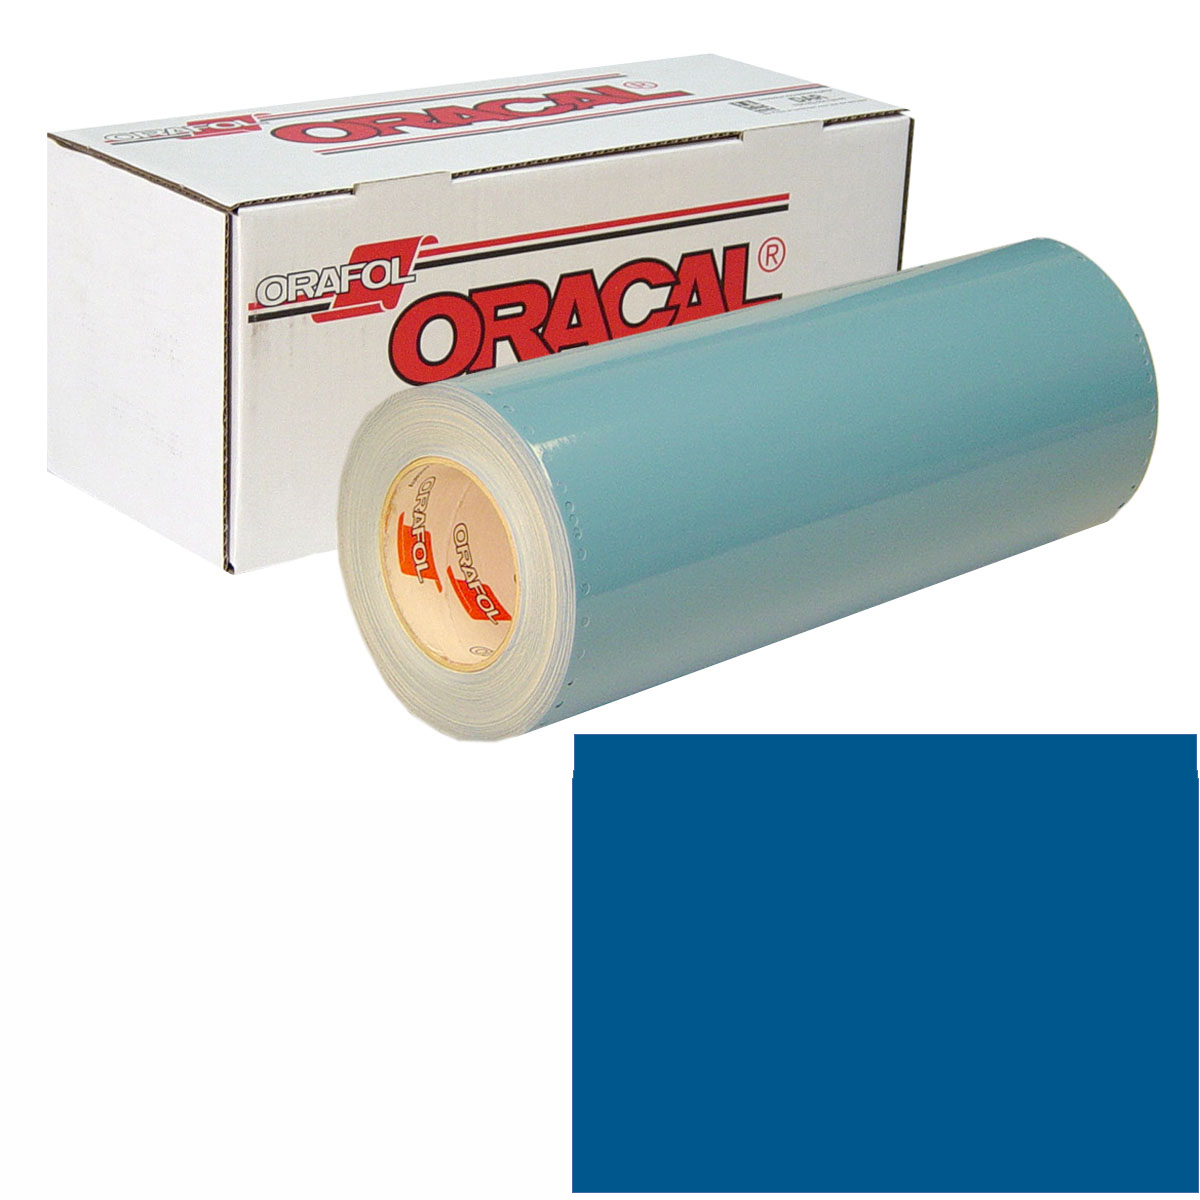 ORACAL 751 15in X 10yd 051 Gentian Blue